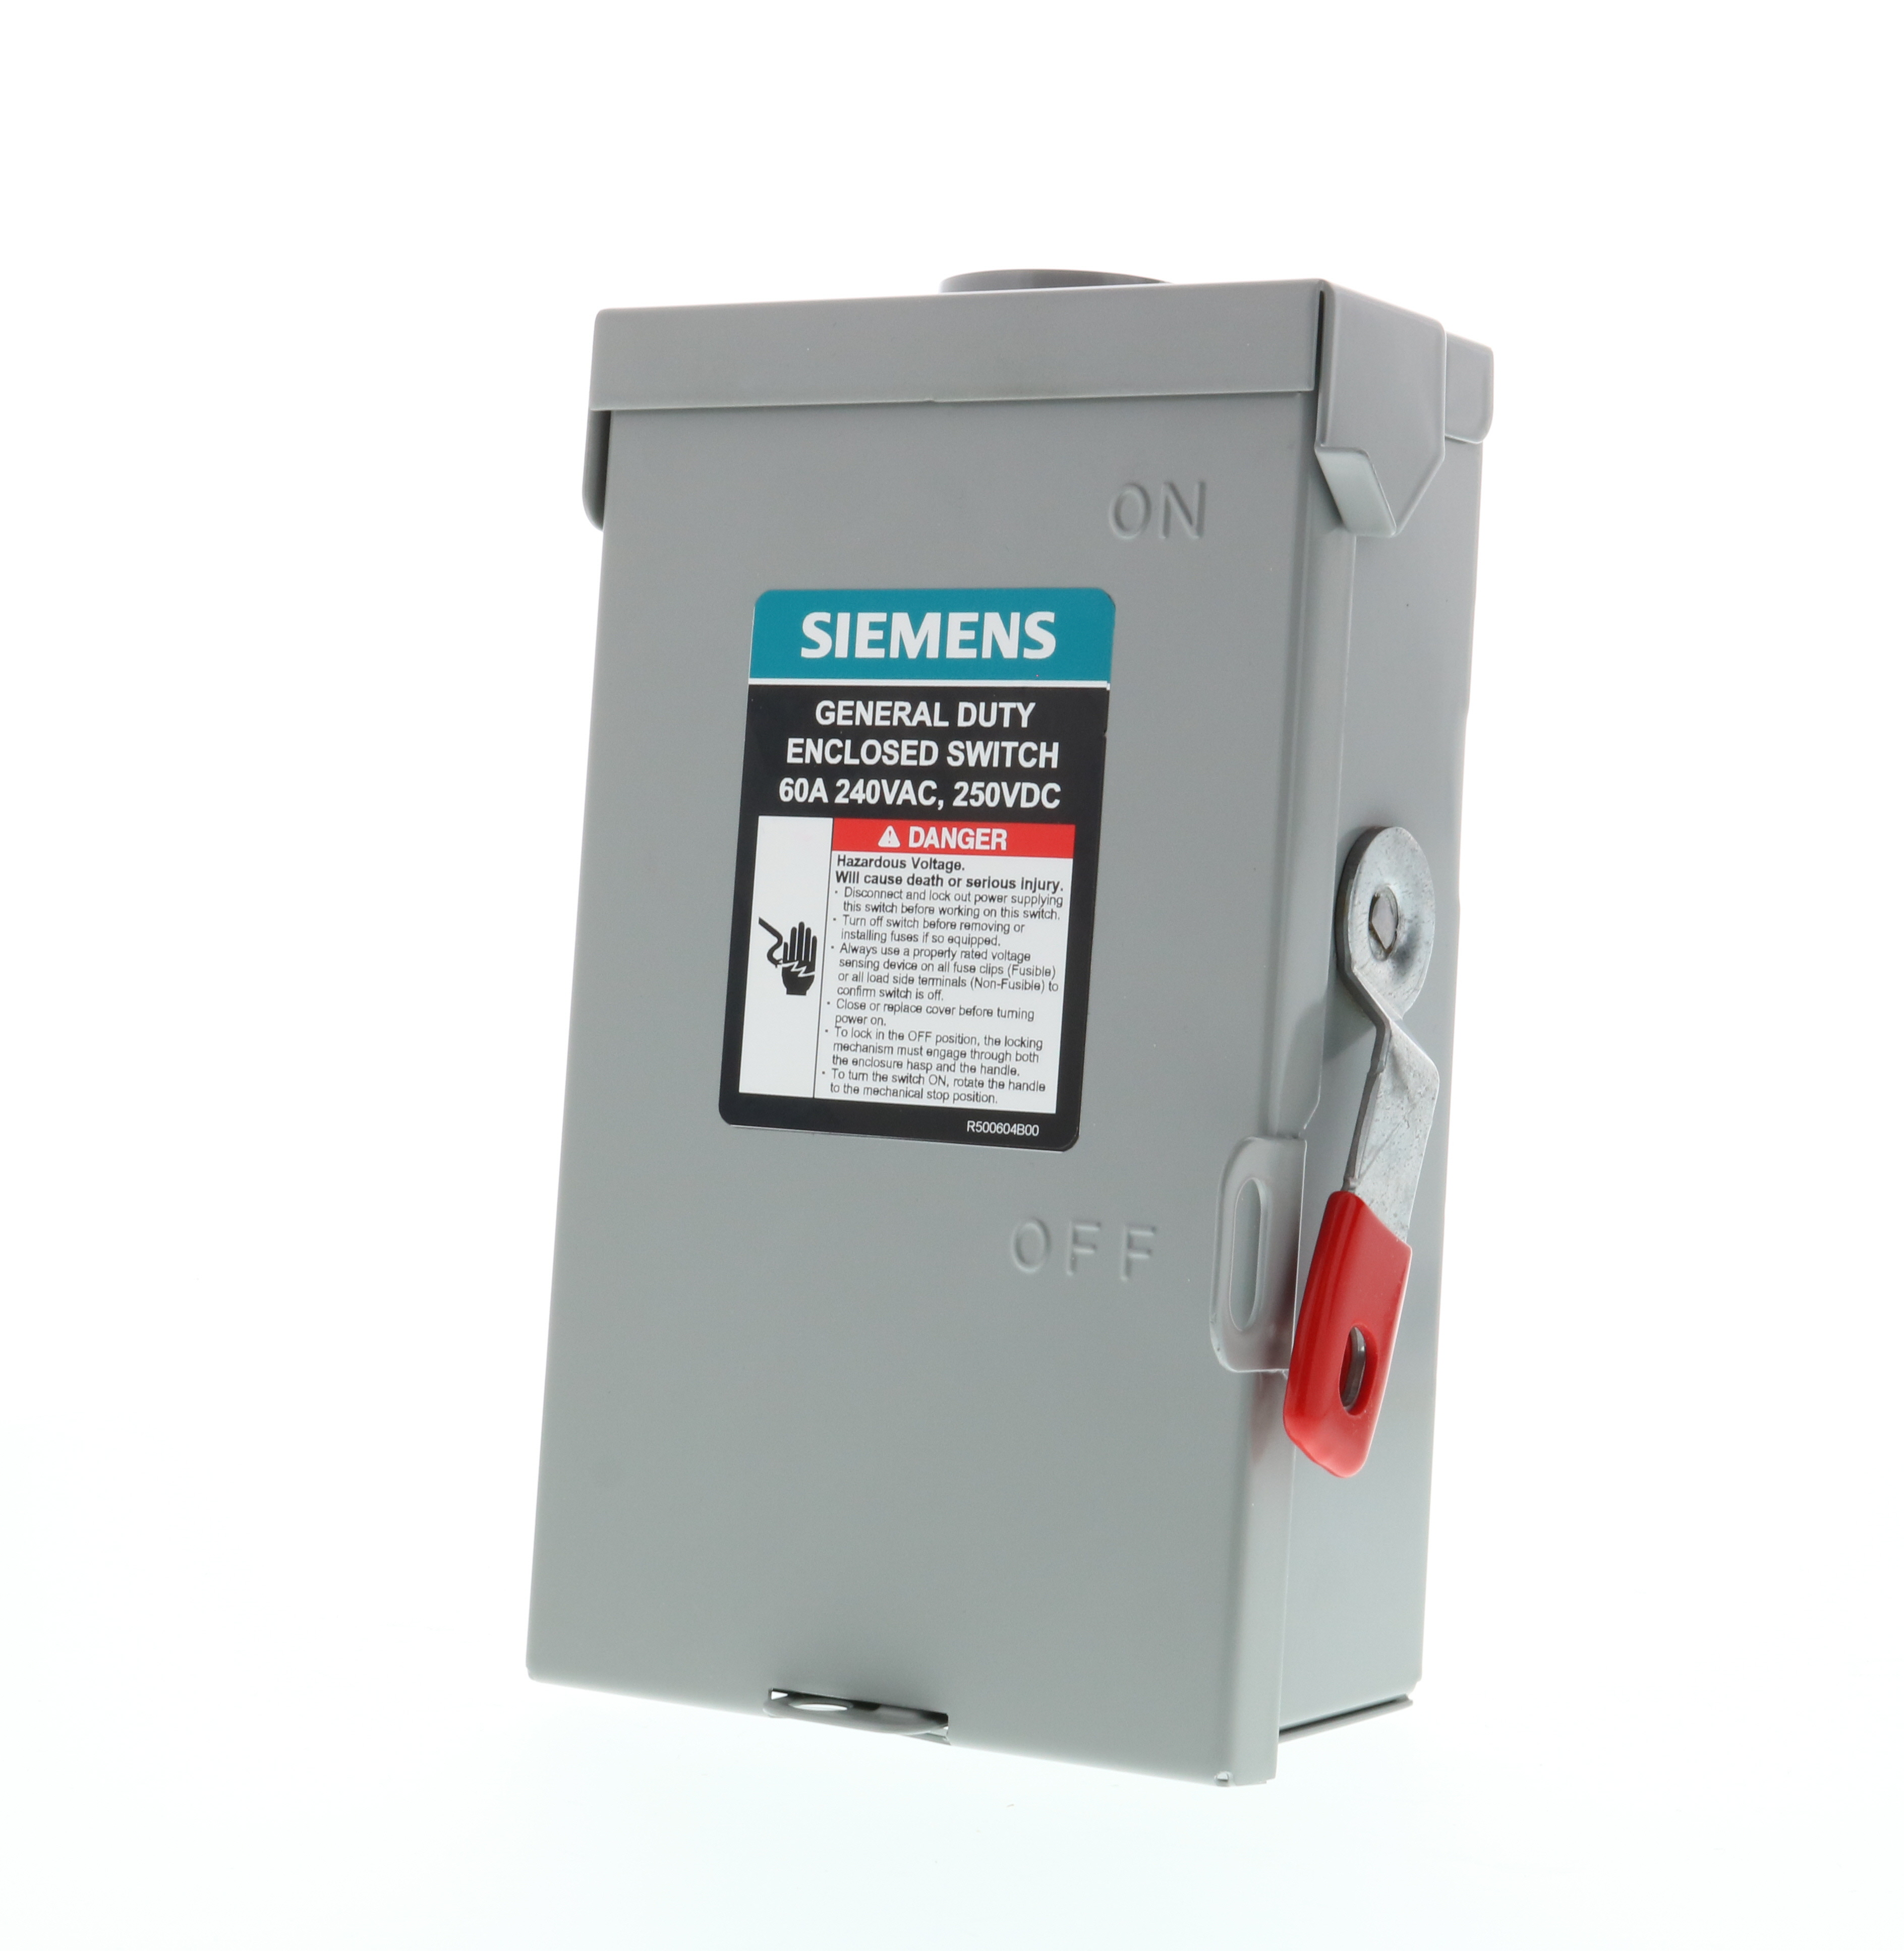 Siemens GNF322RA A Series Type VBII Enclosed Low Voltage Non-Fused General Duty Safety Switch, 240 VAC, 60 A, 10 hp, 15 hp, 3 Poles